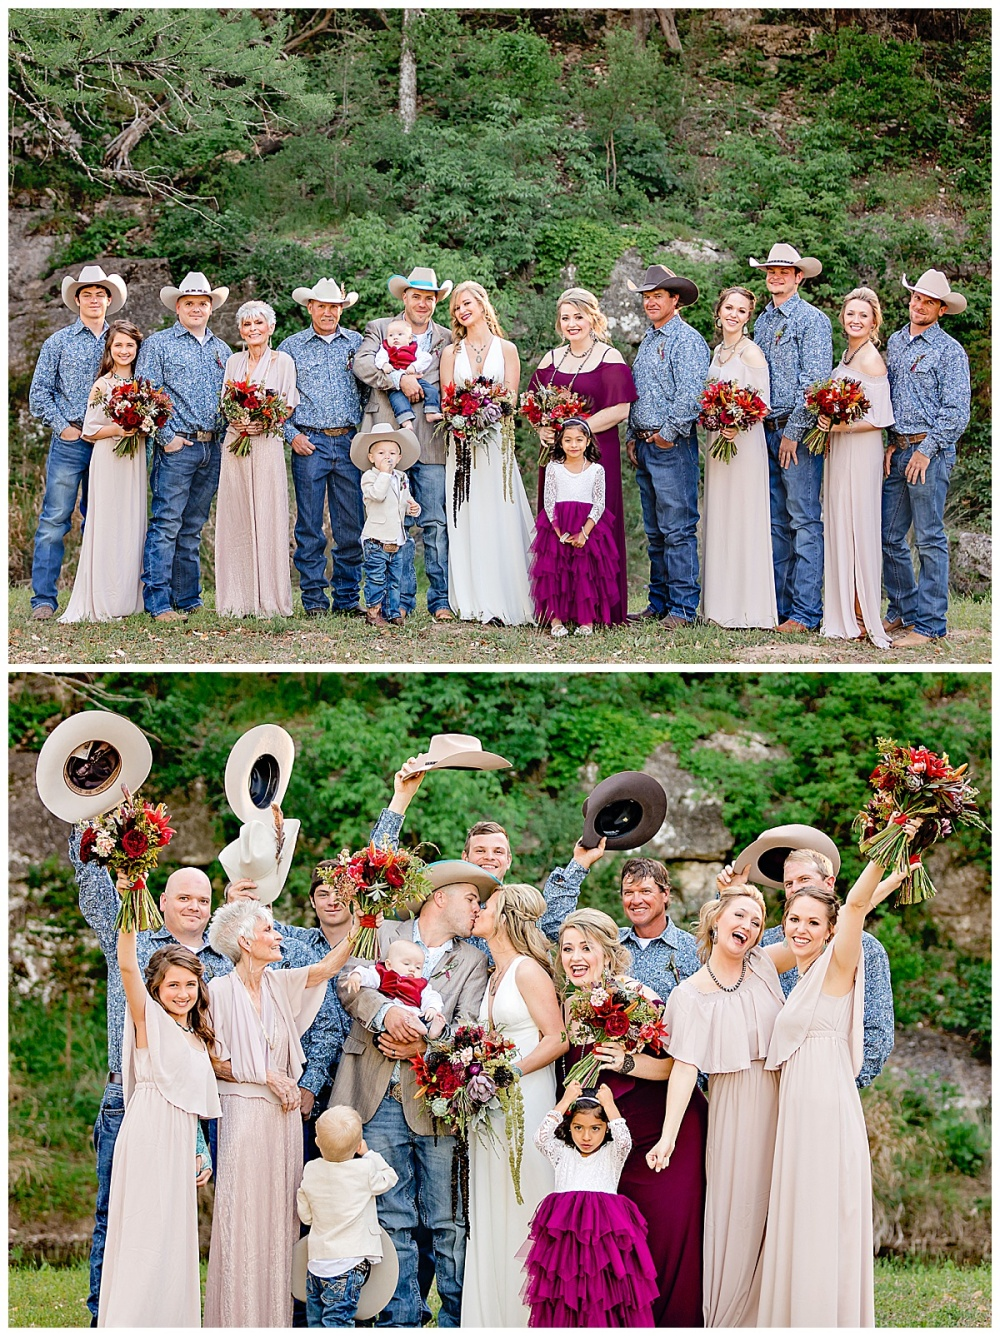 Eagle-Dancer-Ranch-Boerne-Texas-Wedding-Party-Barn-Carly-Barton-Photography_0034.jpg